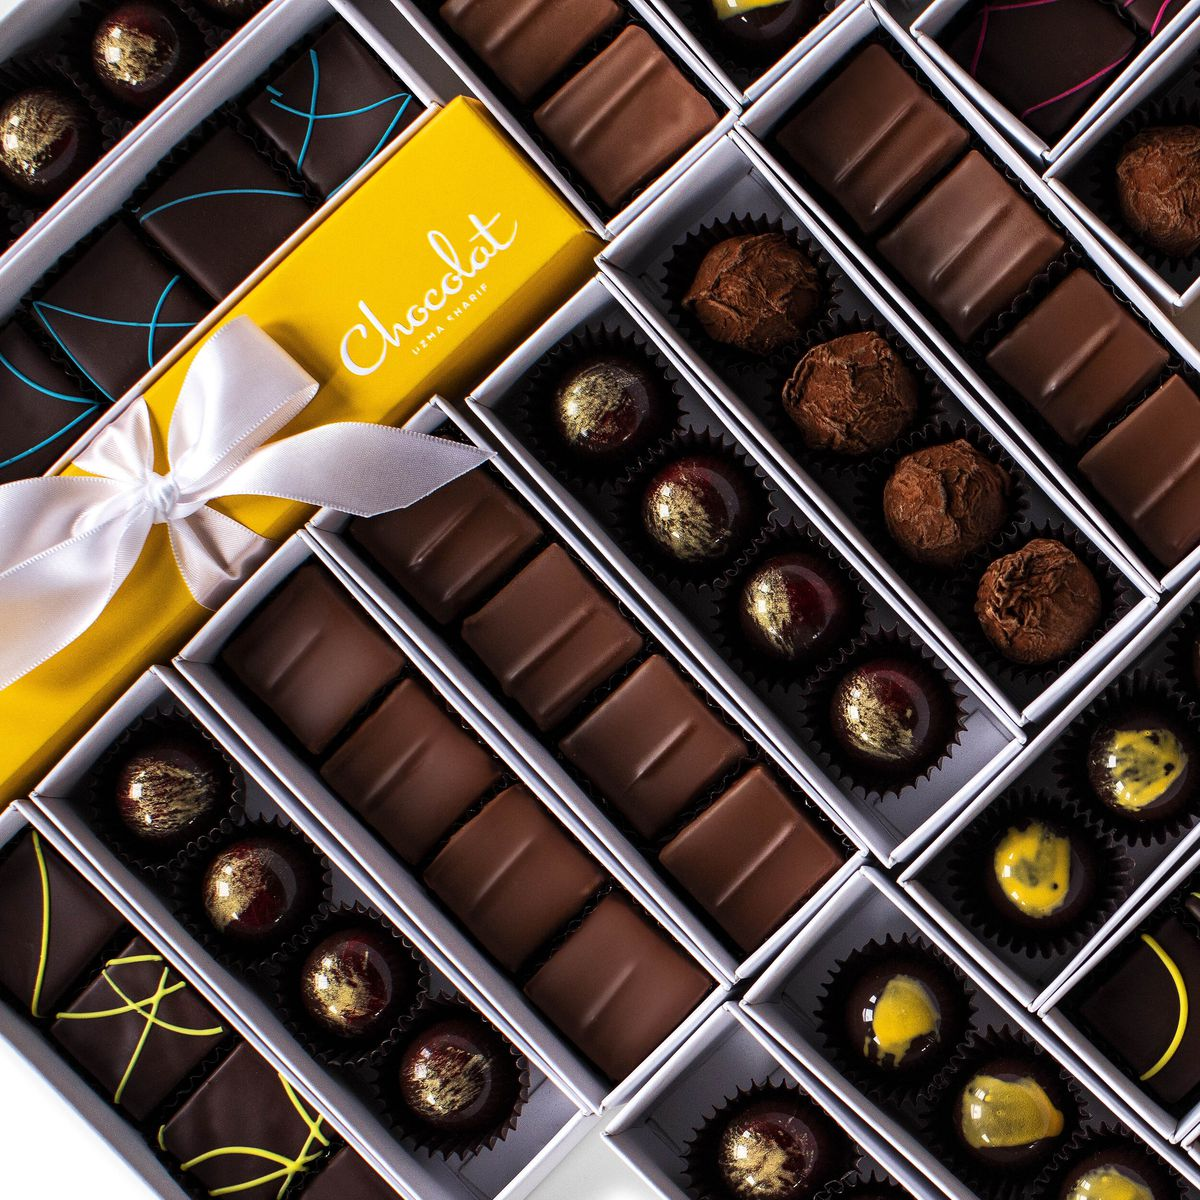 Rows of specialty chocolates in boxes.